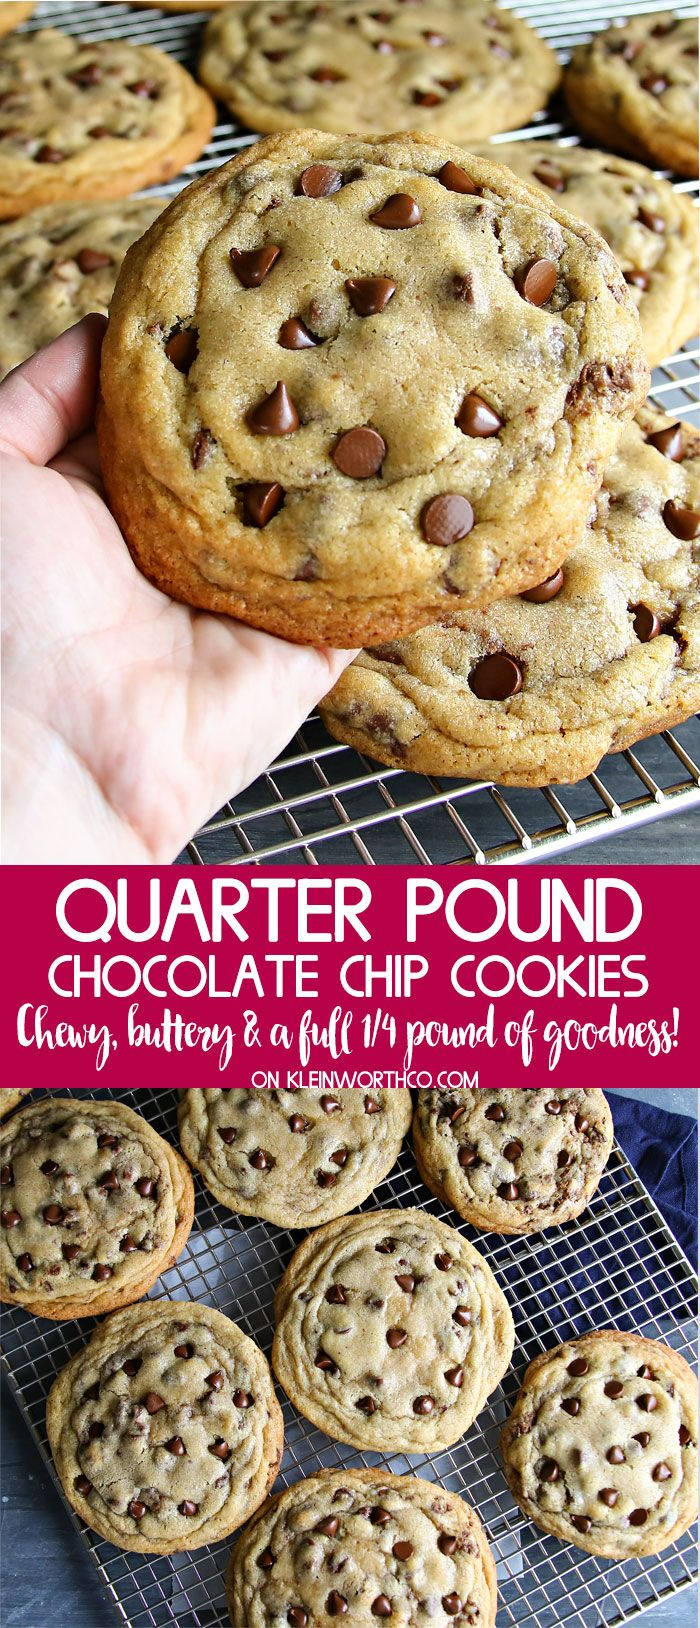 Quarter Pound Chocolate Chip Cookies are an easy to make, soft & chewy cookie recipe to WOW the crowd. Truly a 1/4 pound of buttery, chocolaty goodness.